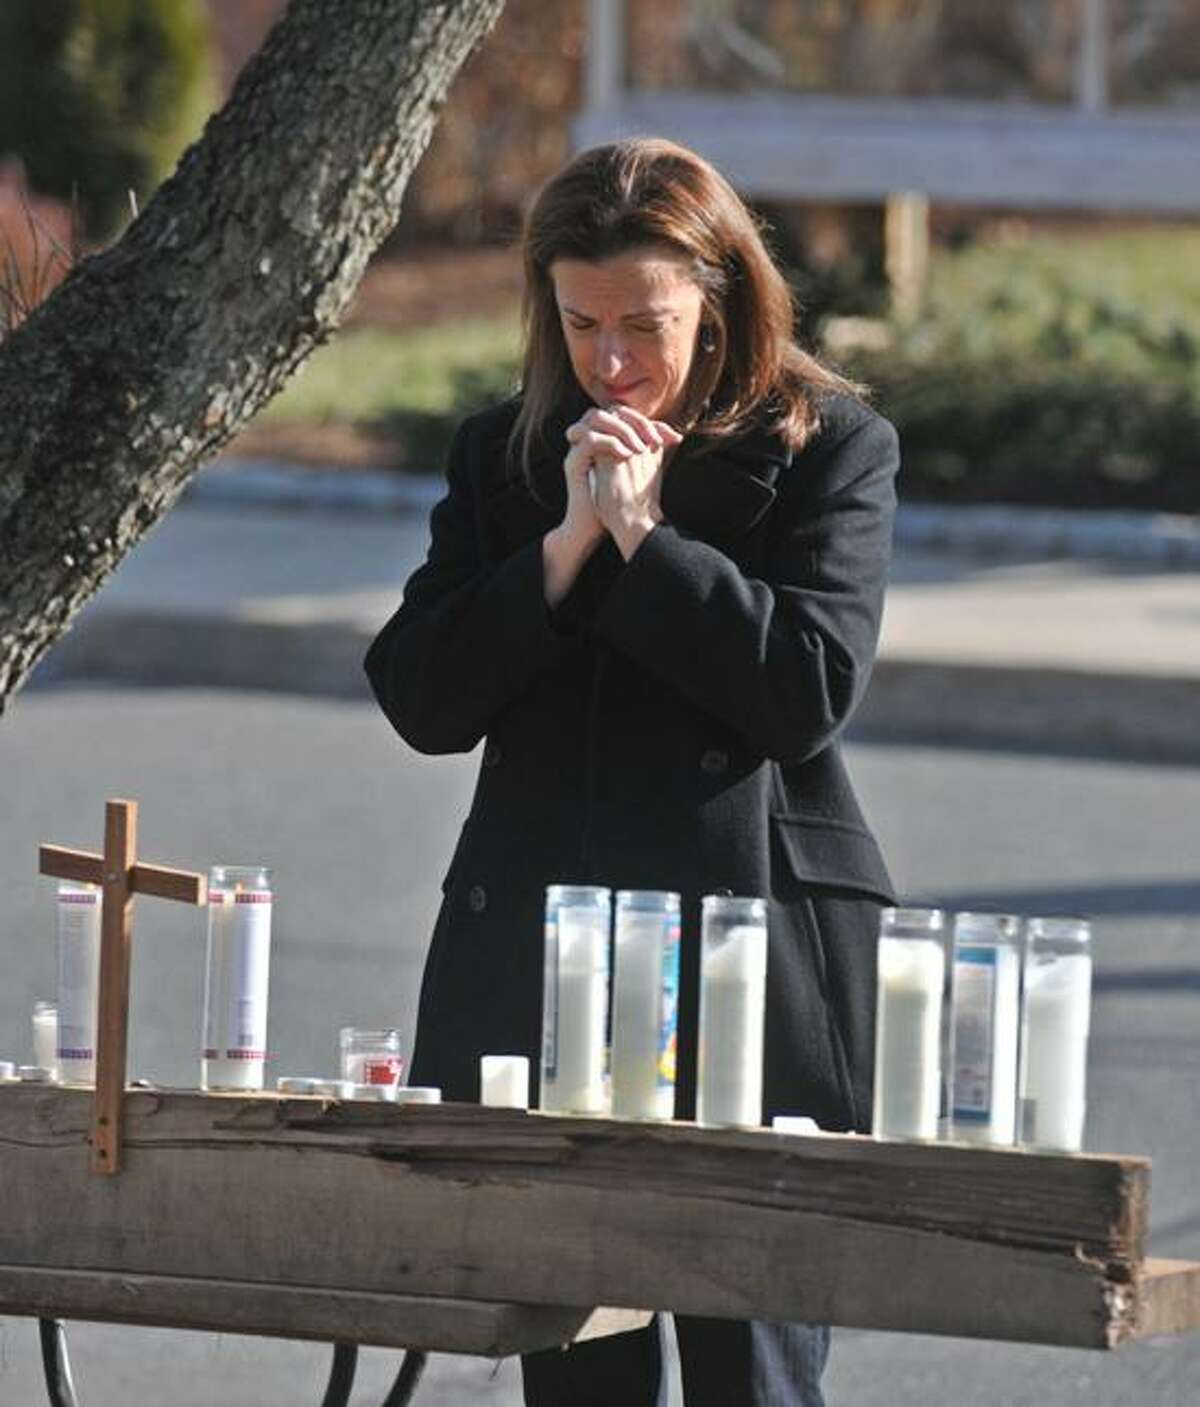 Ginny Smith of Sandy Hook prays outside the St. Rose of Lima Church in Newtown. Smith's daughter did a teaching internship recently at the Sandy Hook Elementary School and knew some of the victims. Peter Casolino/New Haven Register